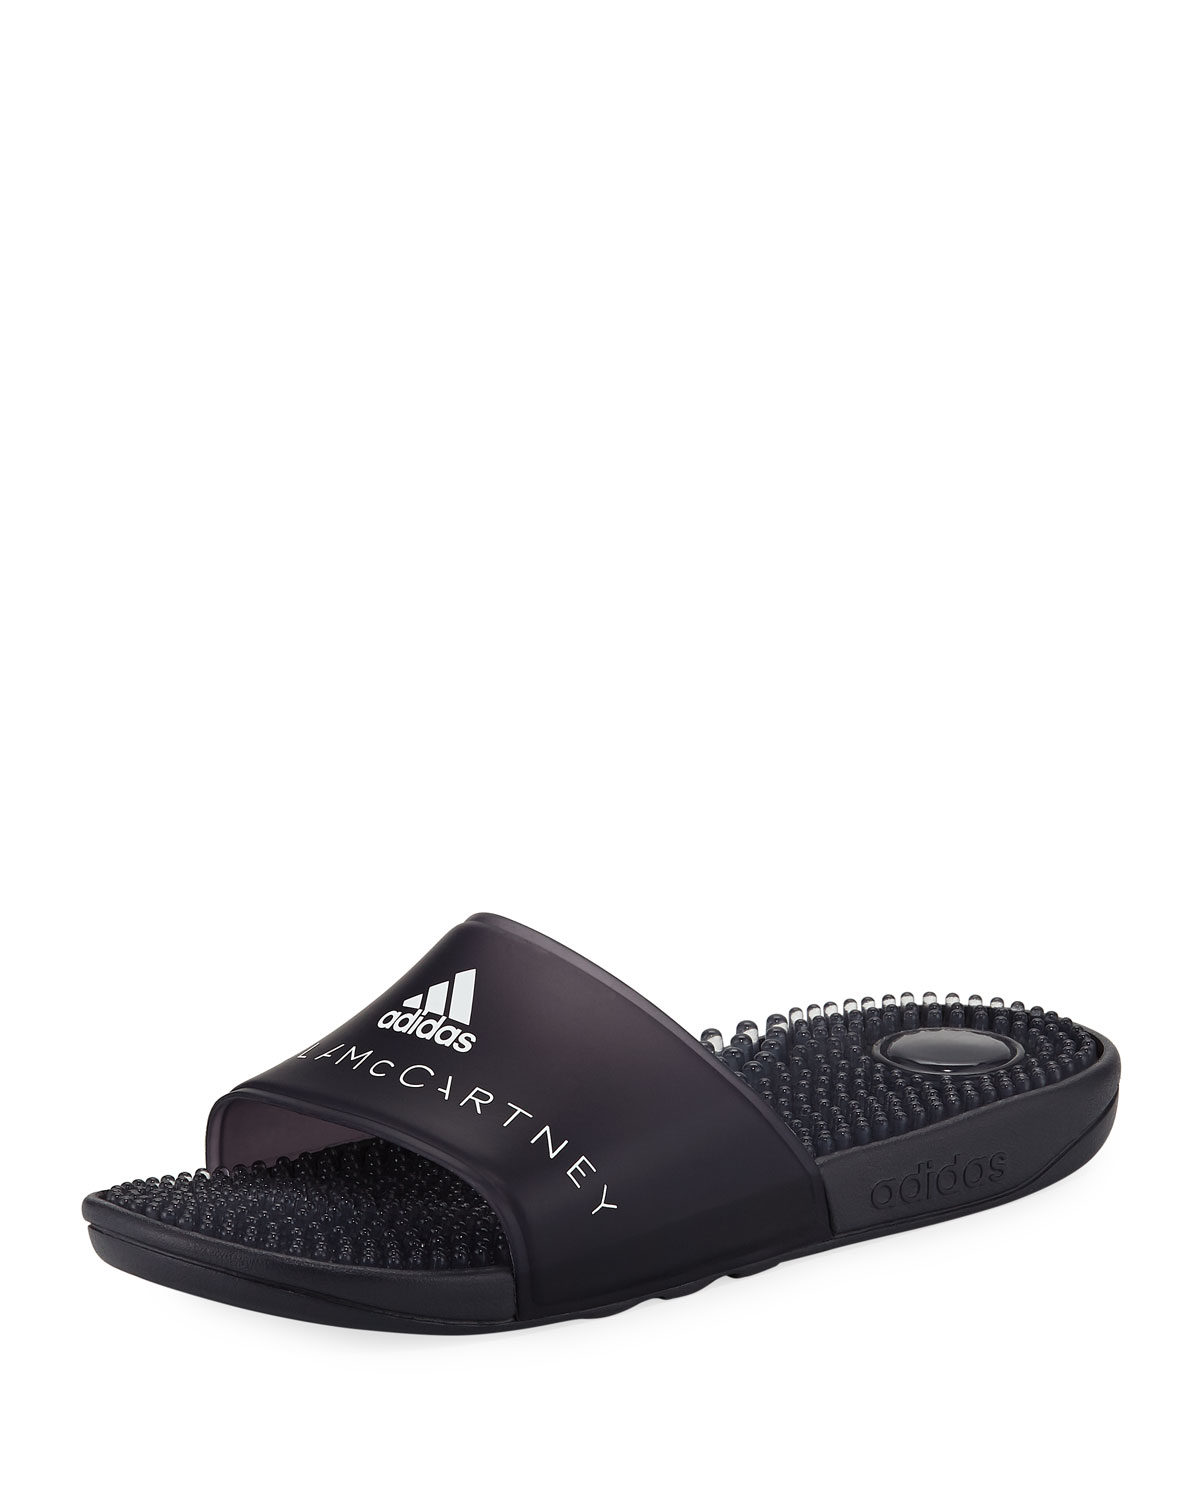 1e2530001a97 adidas by Stella McCartney Adissage Slide Sandal with Massaging Footbed